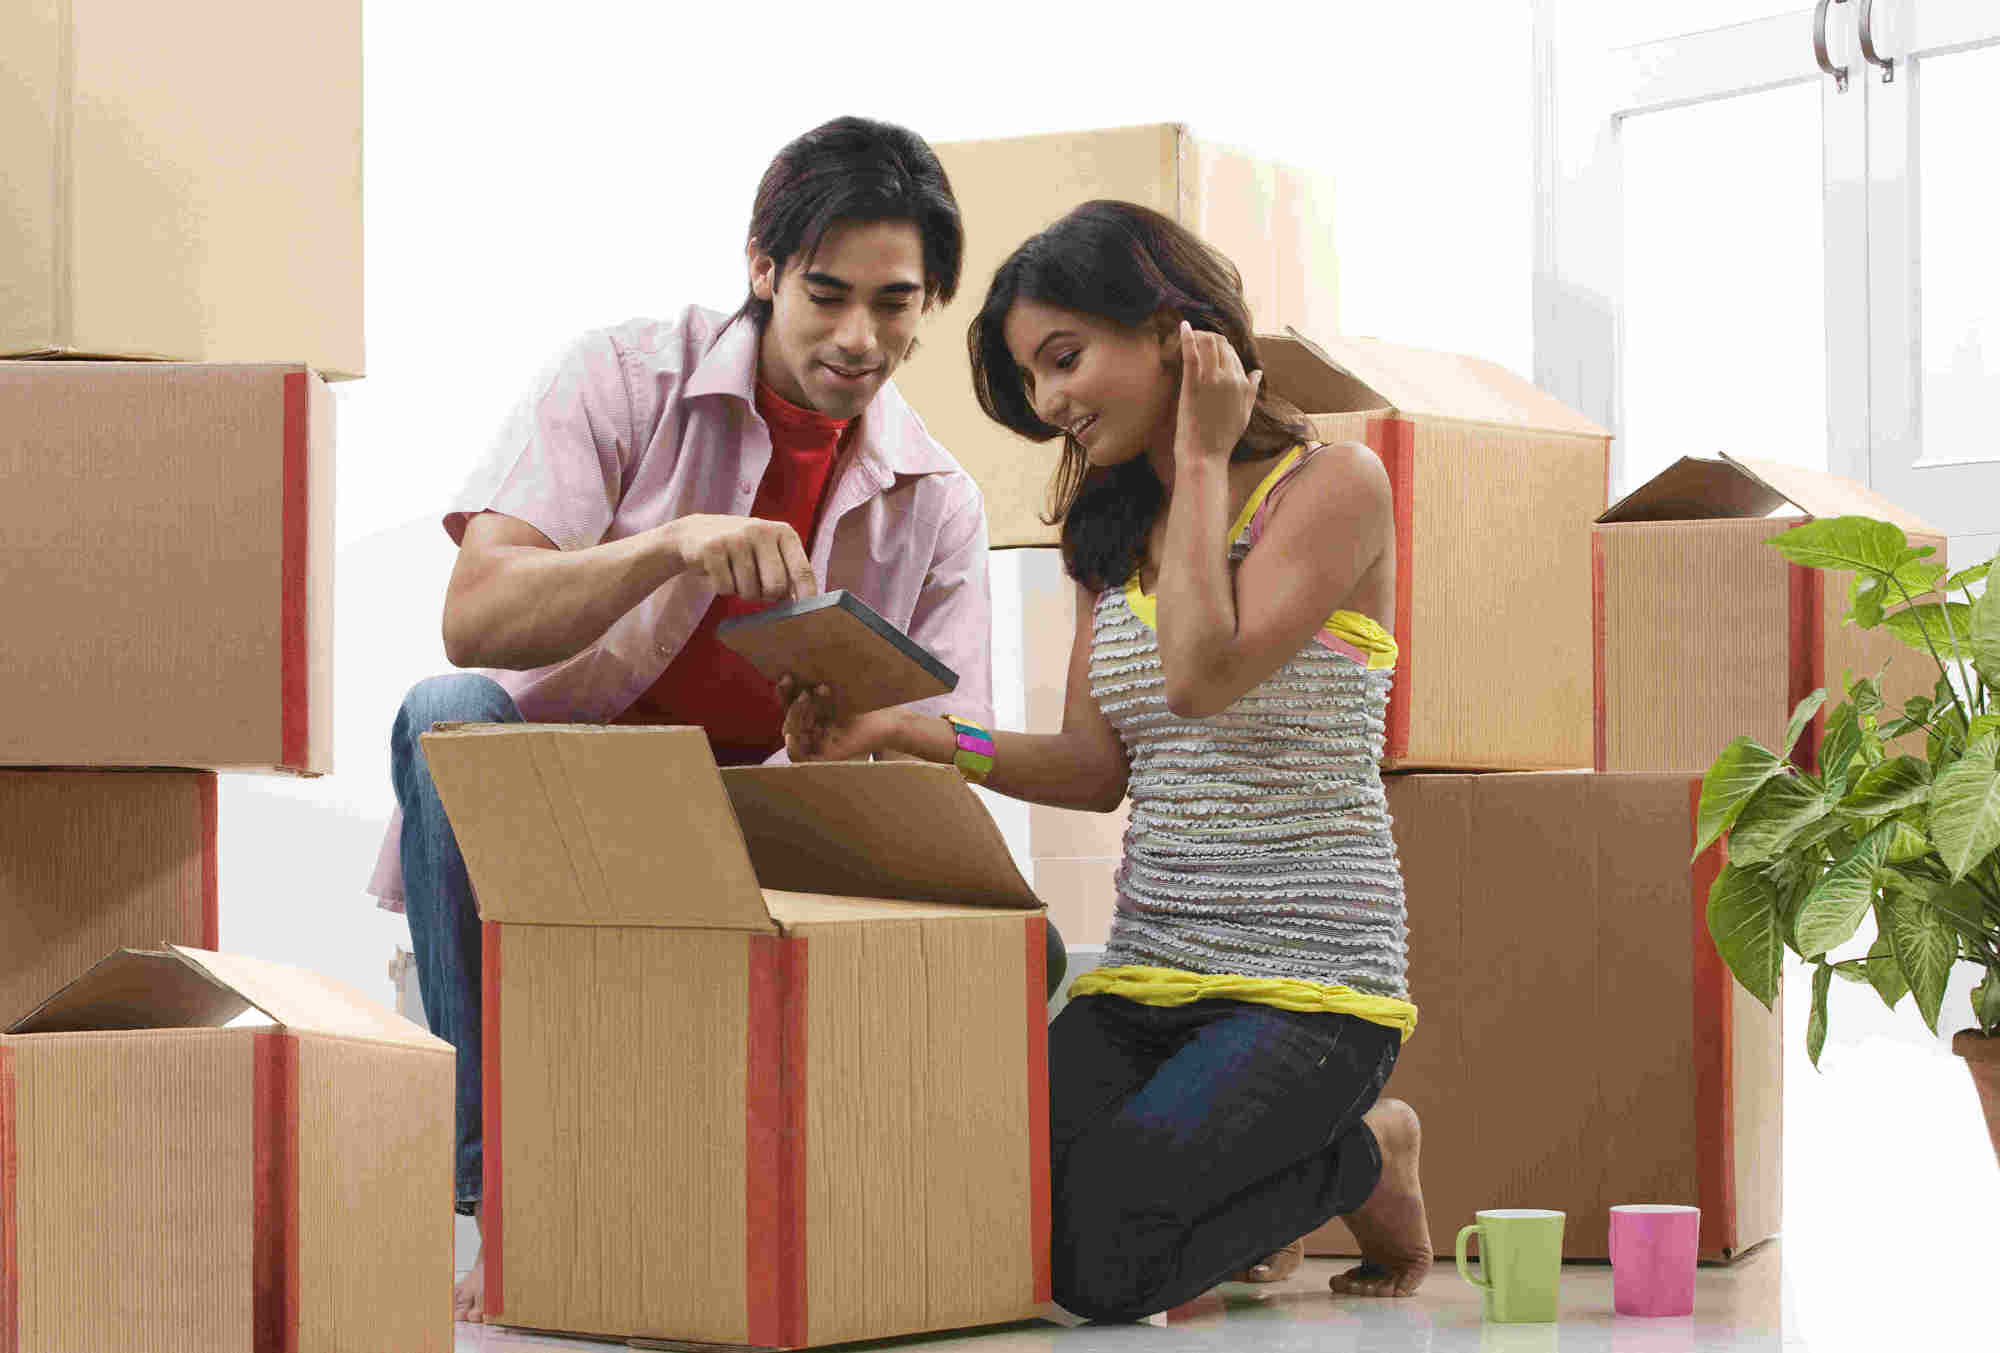 young couple viewing photos from moving boxes